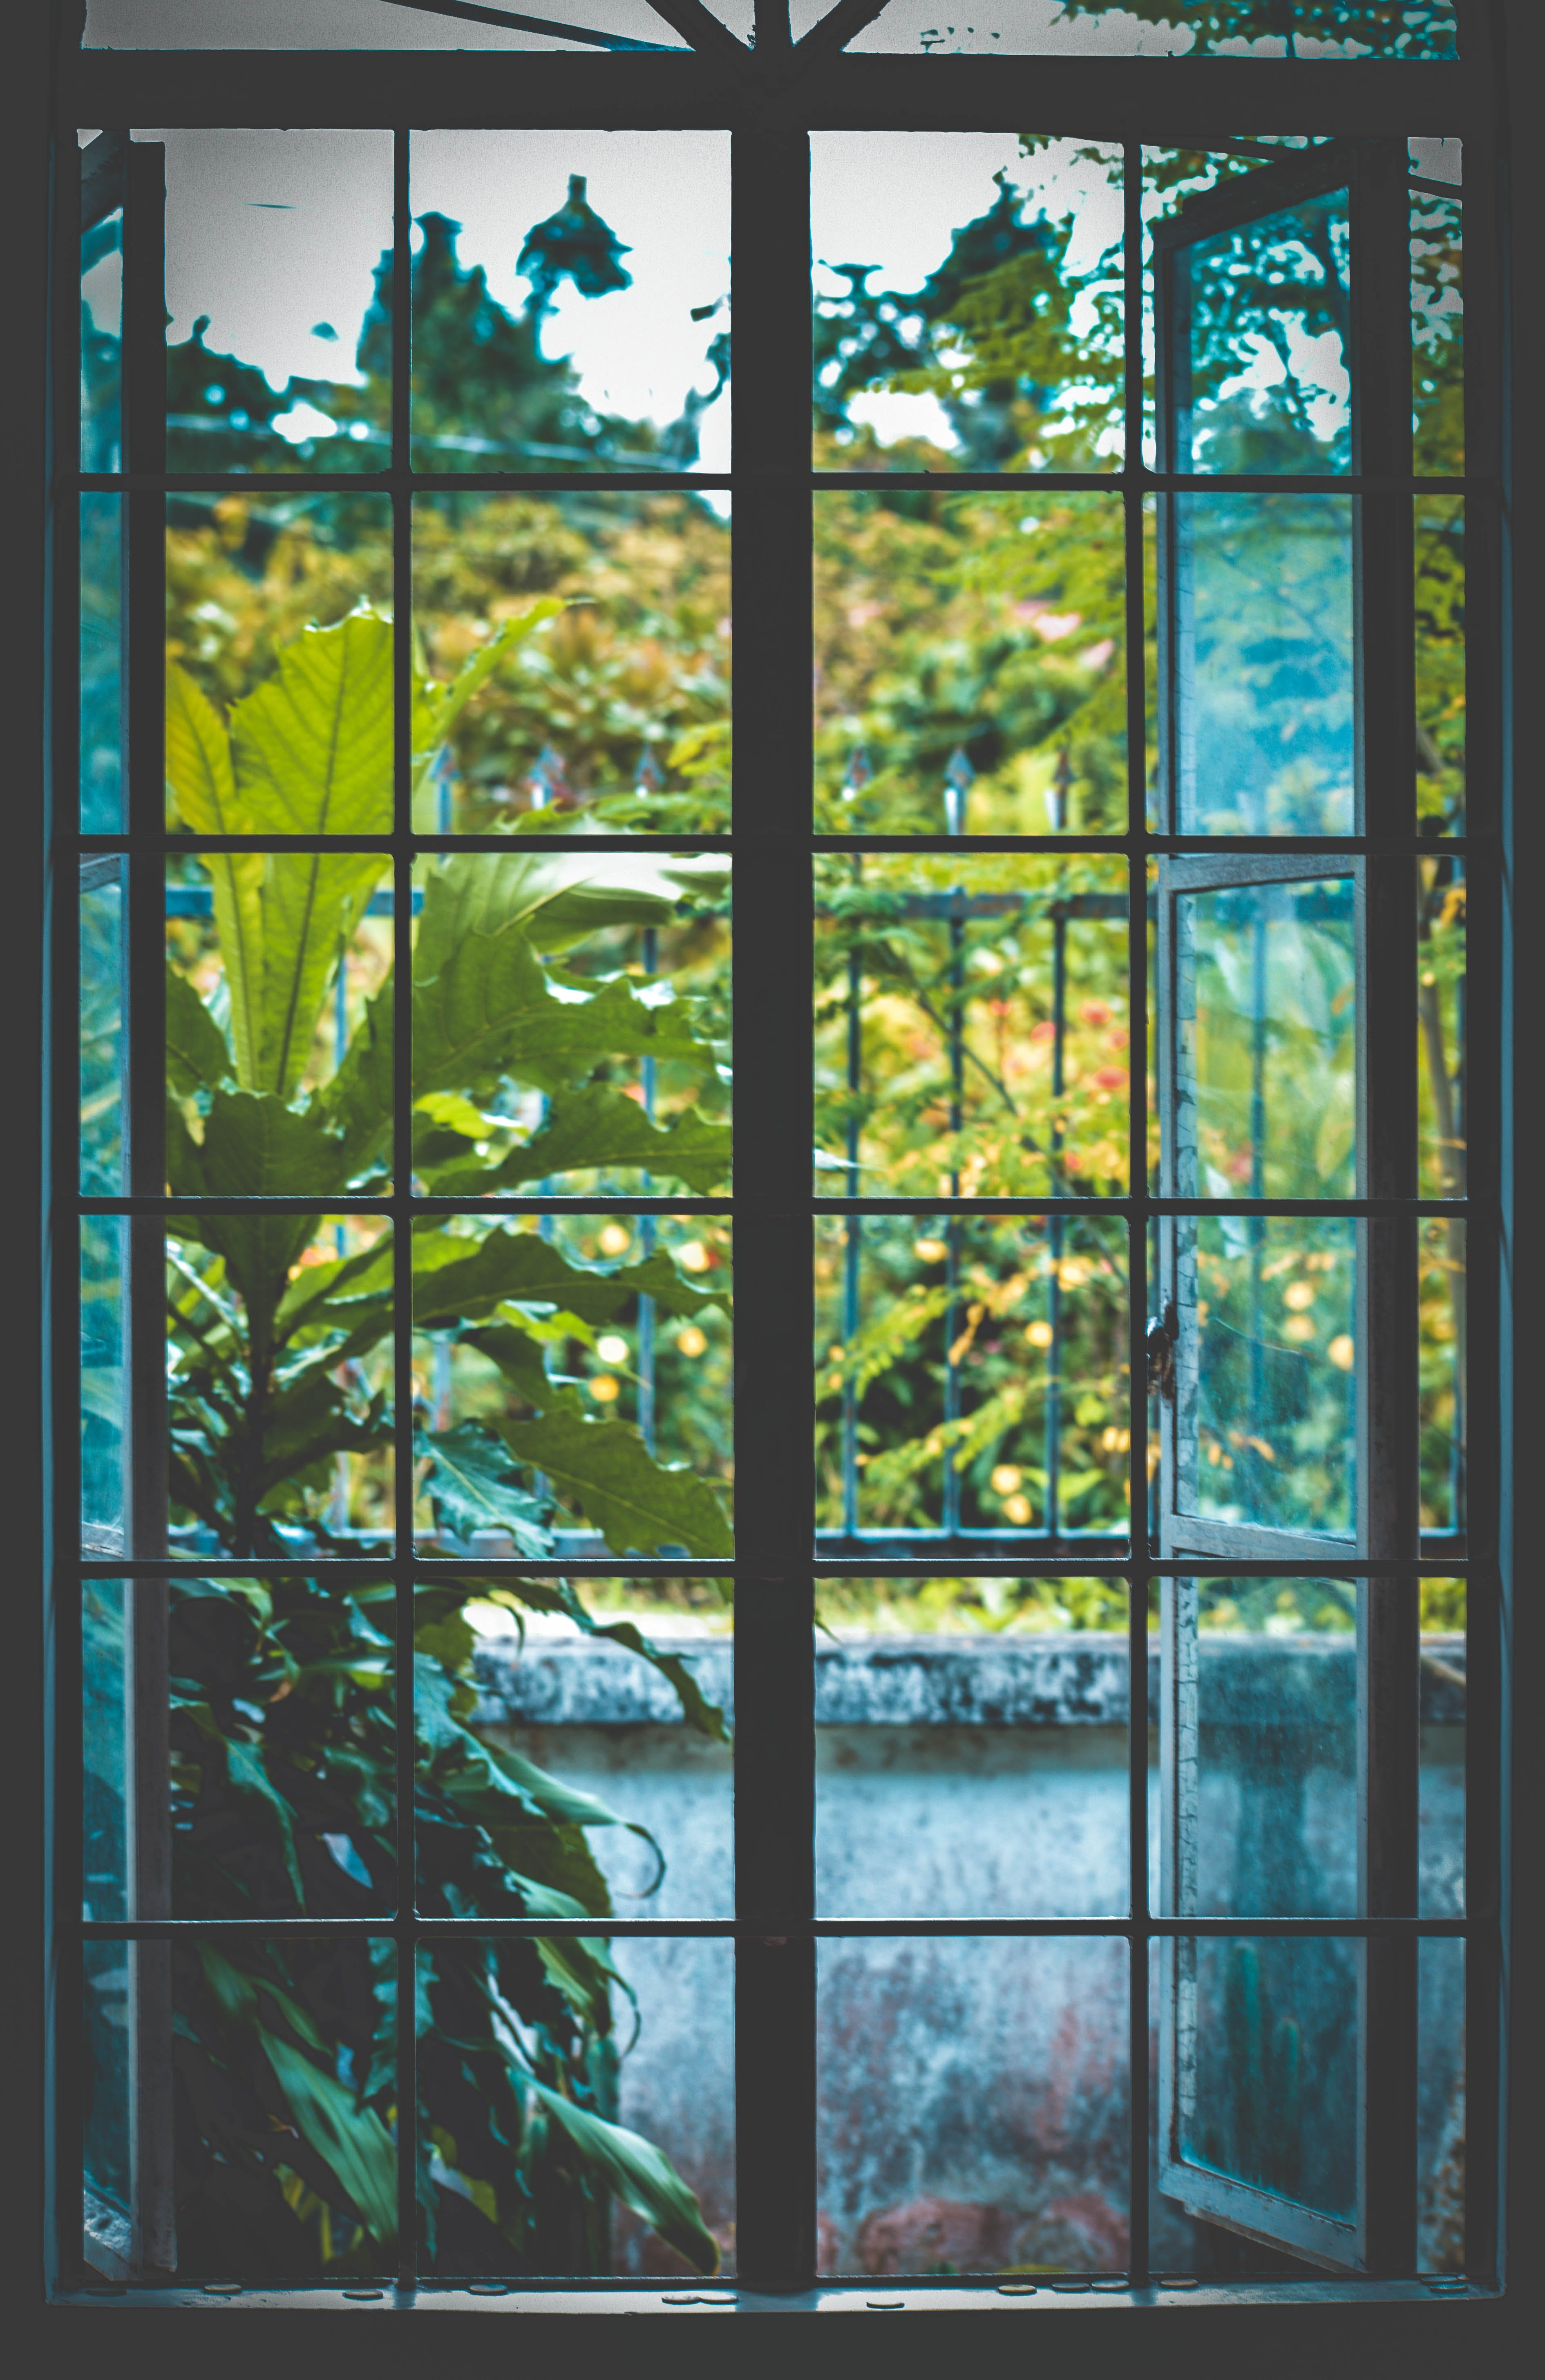 Open Black Metal Framed Clear Glass Window Near Plants